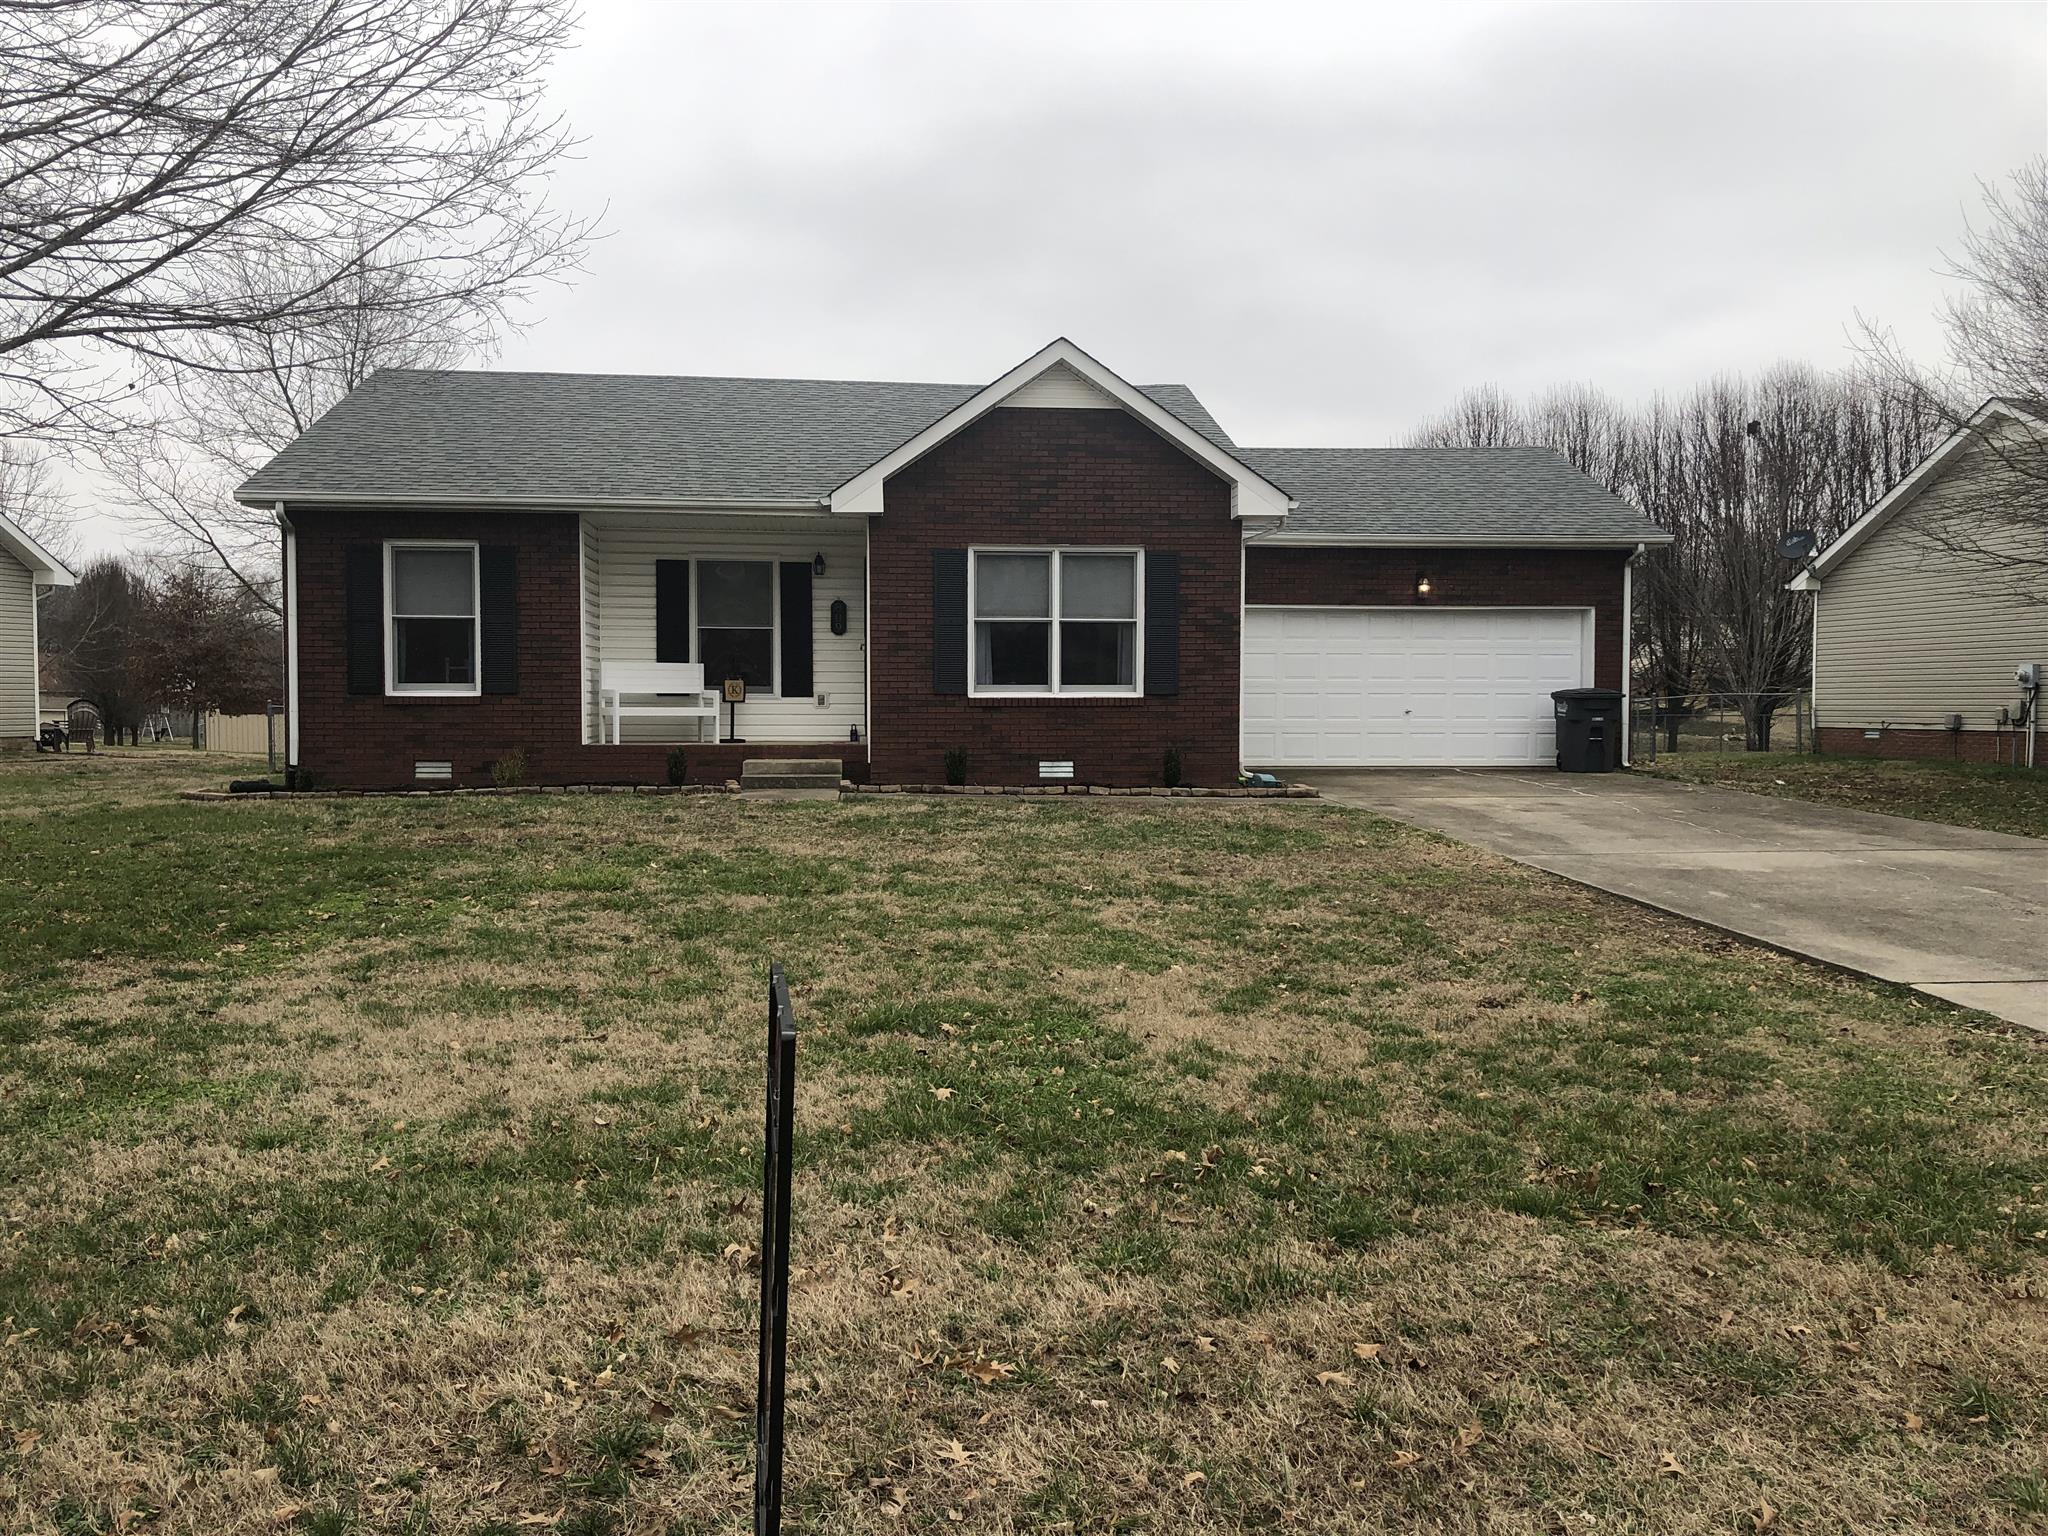 809 Buckhorn Dr, Clarksville in Montgomery County County, TN 37043 Home for Sale